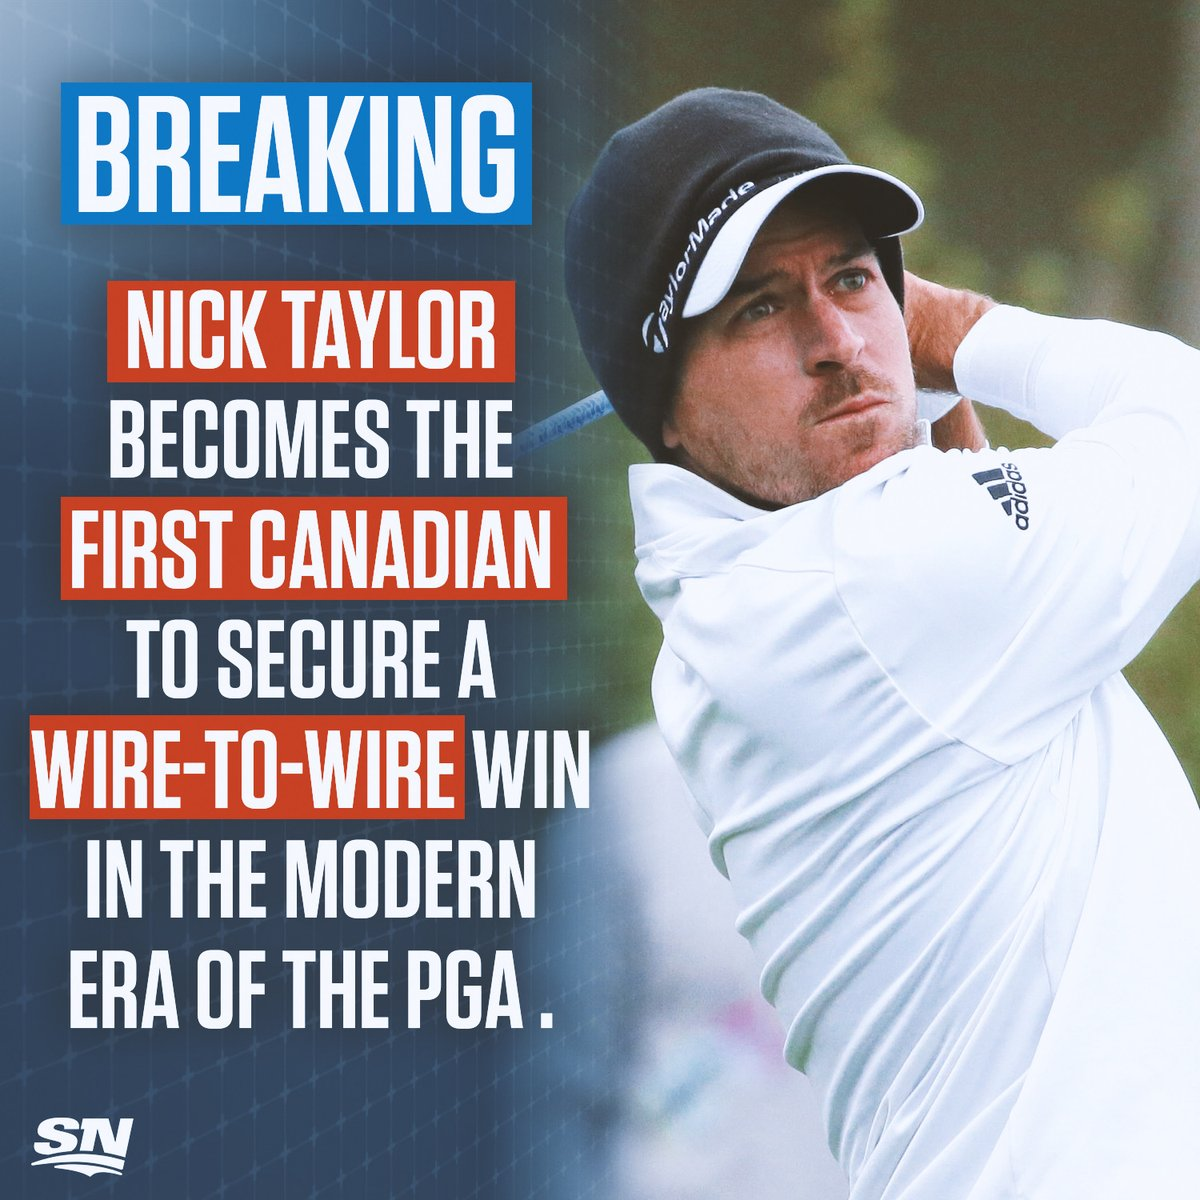 BREAKING: Nick Taylor wins the AT&T Pebble Beach Pro-Am, becoming the first Canadian to secure a wire-to-wire win in the modern @PGATOUR era. 👏🇨🇦 DETAILS: sportsnet.ca/golf/canadas-n…